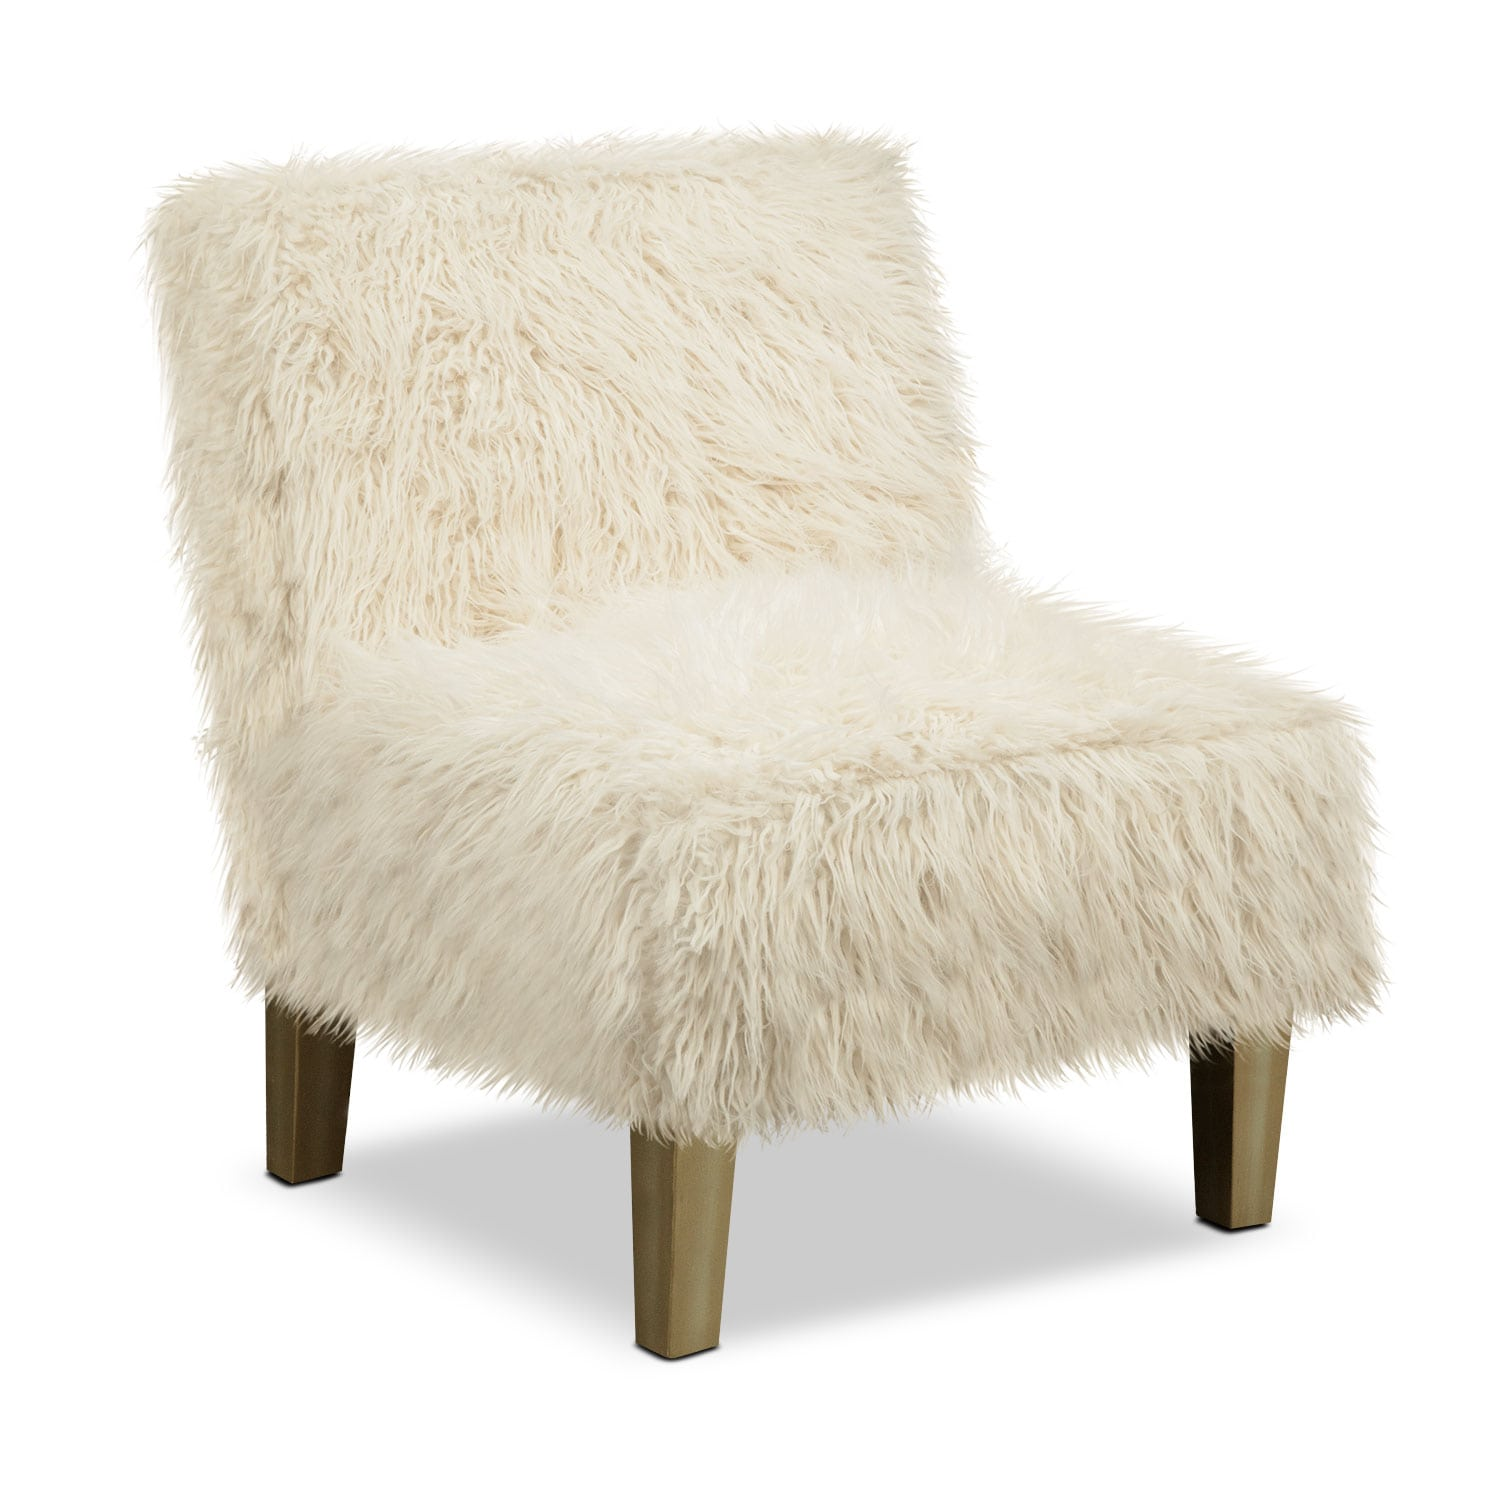 Westie Accent Chair - White